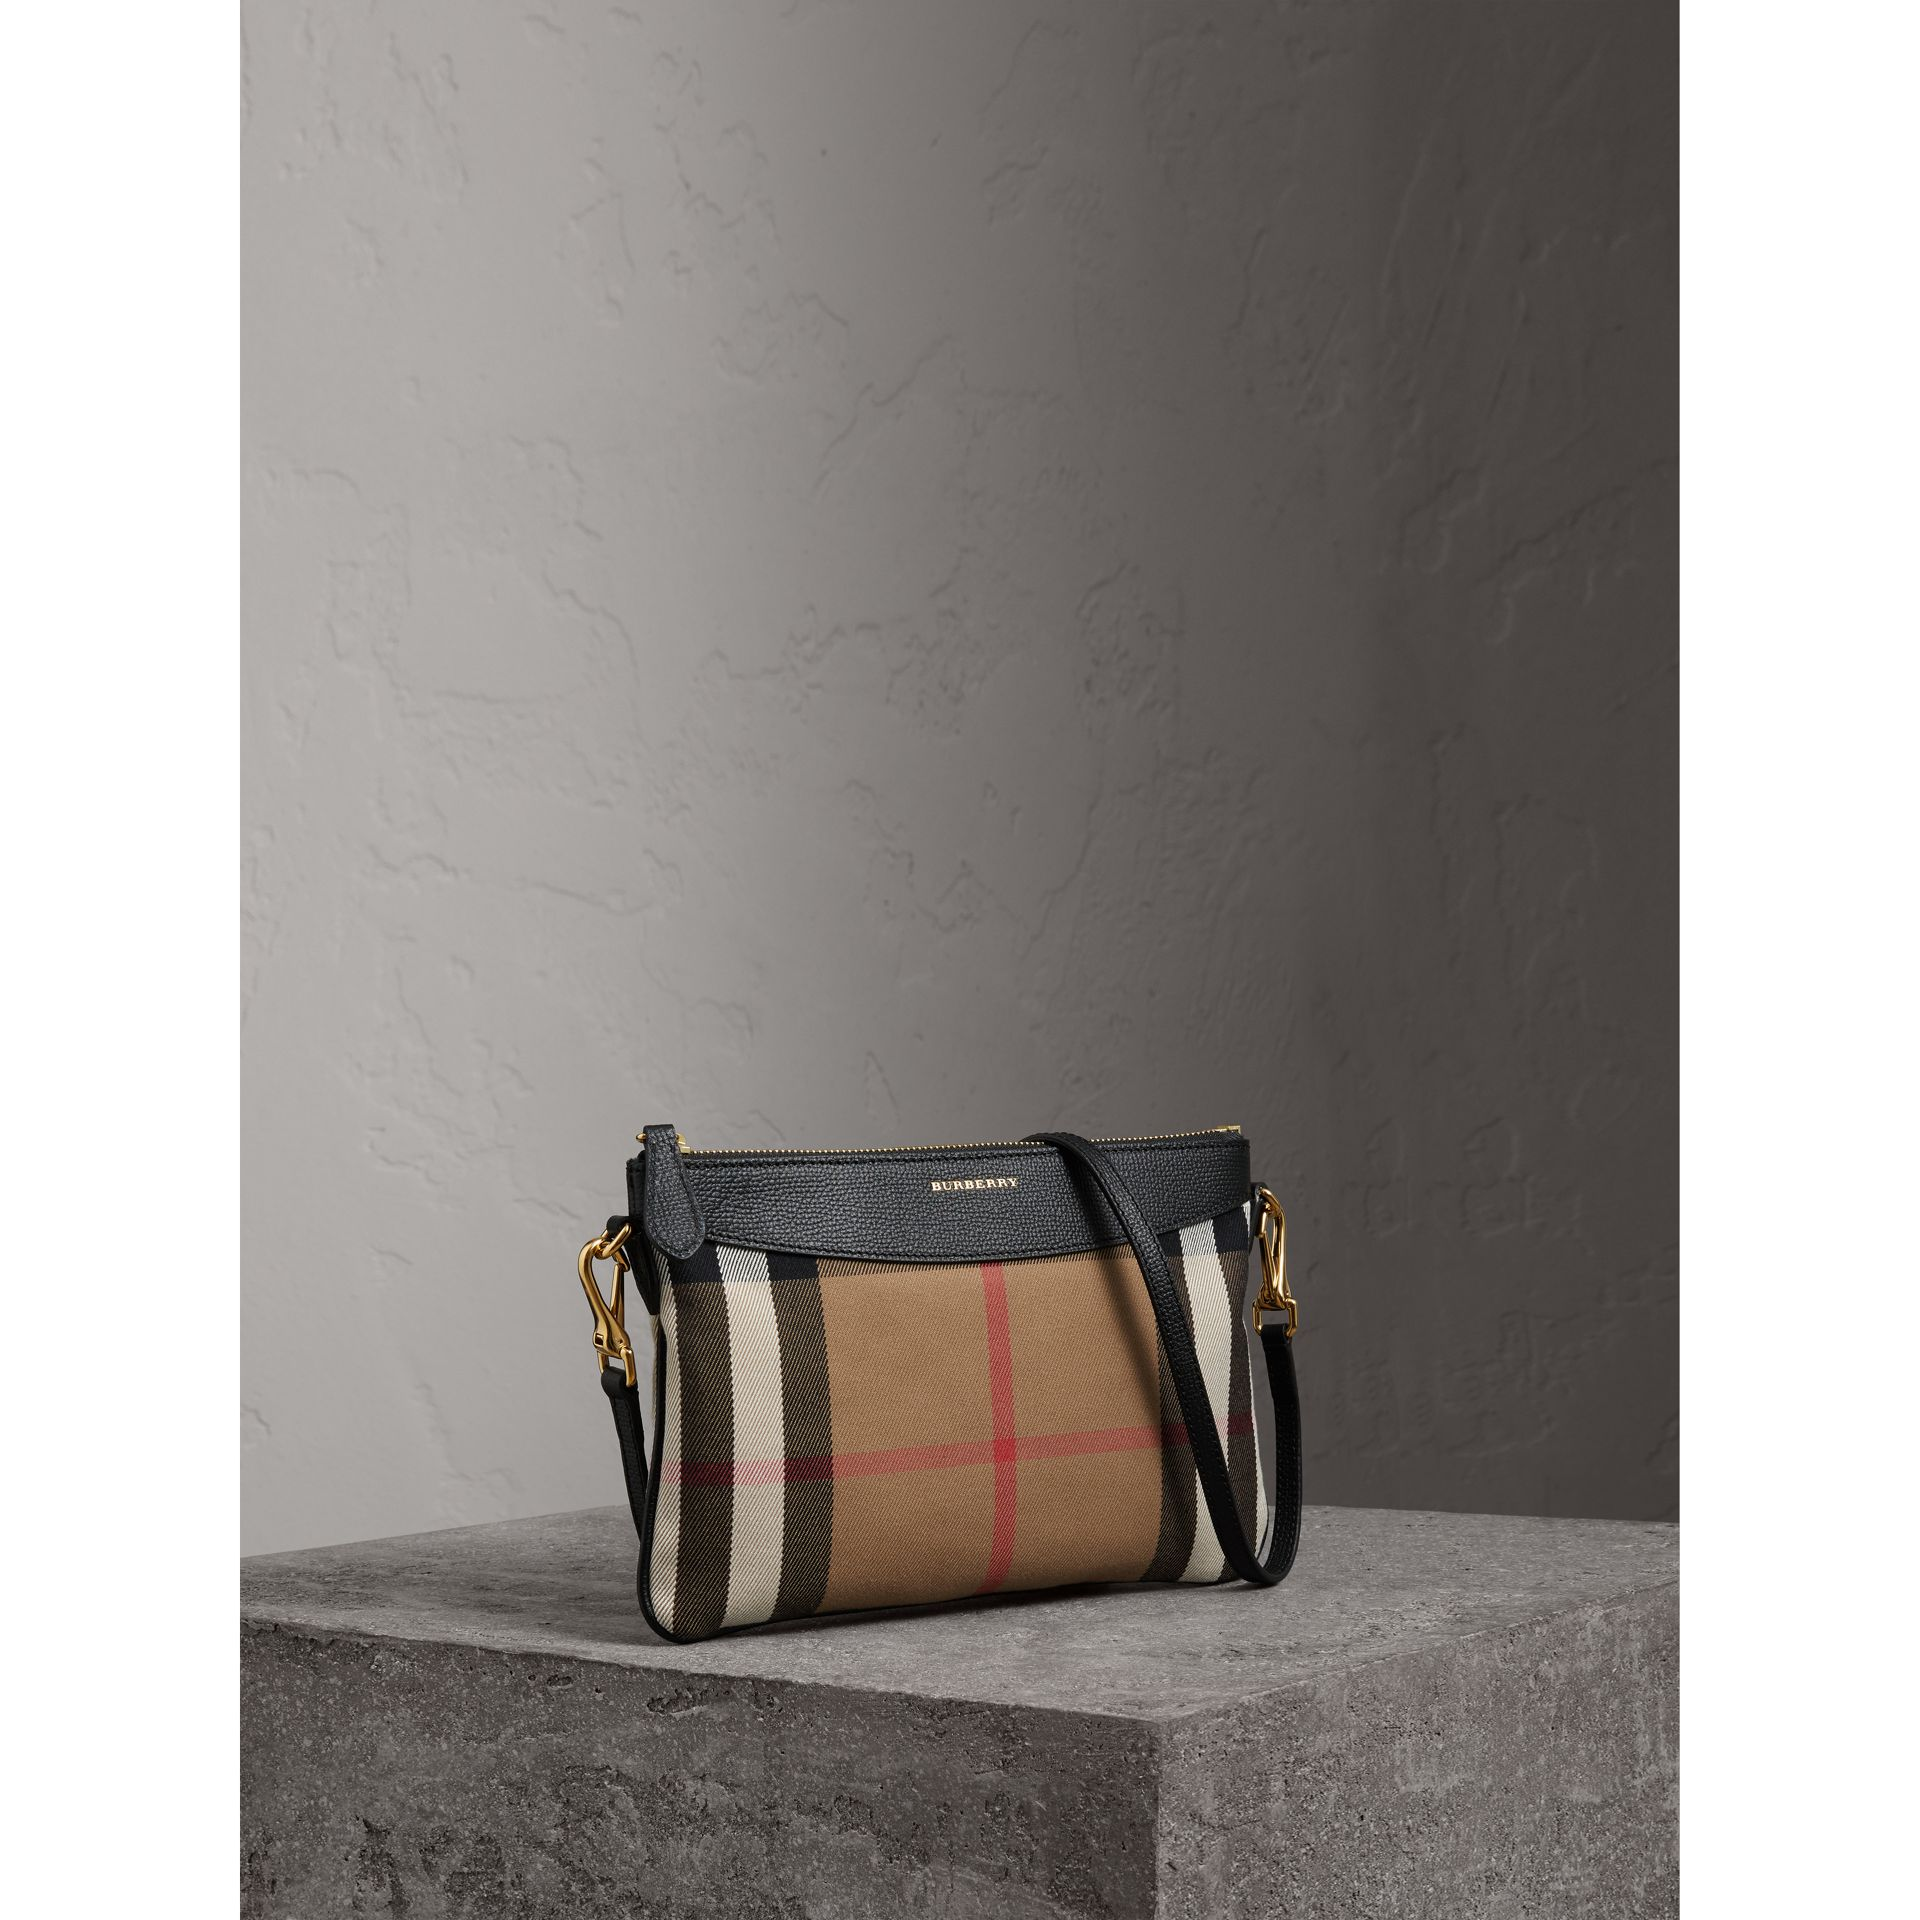 House Check and Leather Clutch Bag in Black - Women | Burberry - gallery image 6